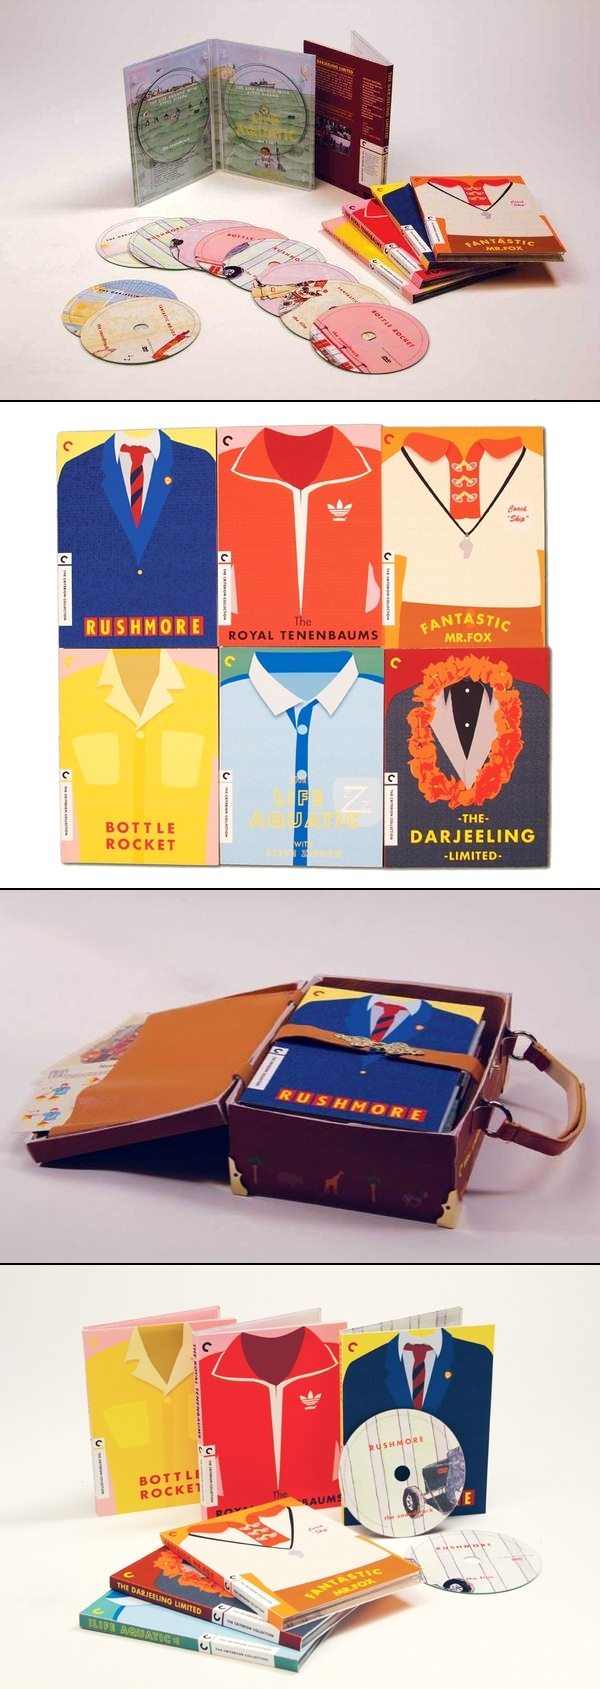 Here's another top team pin with over 160 repins: Wes Anderson Special Edition DVDs. #identity #packaging too bad it's not real PD #toppins